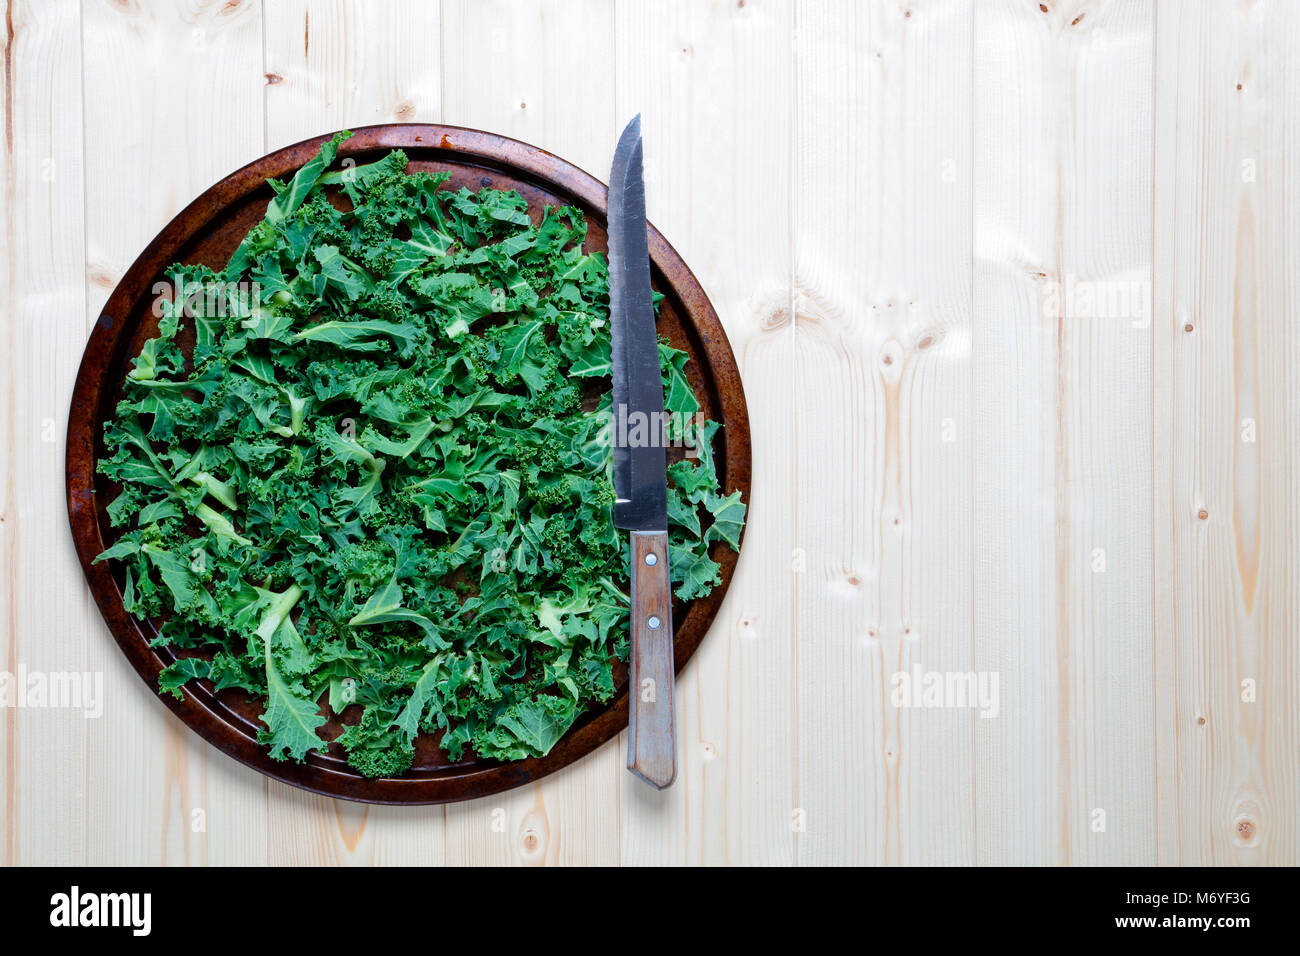 Fresh chopped prepared kale on old metal platter with knife Stock Photo